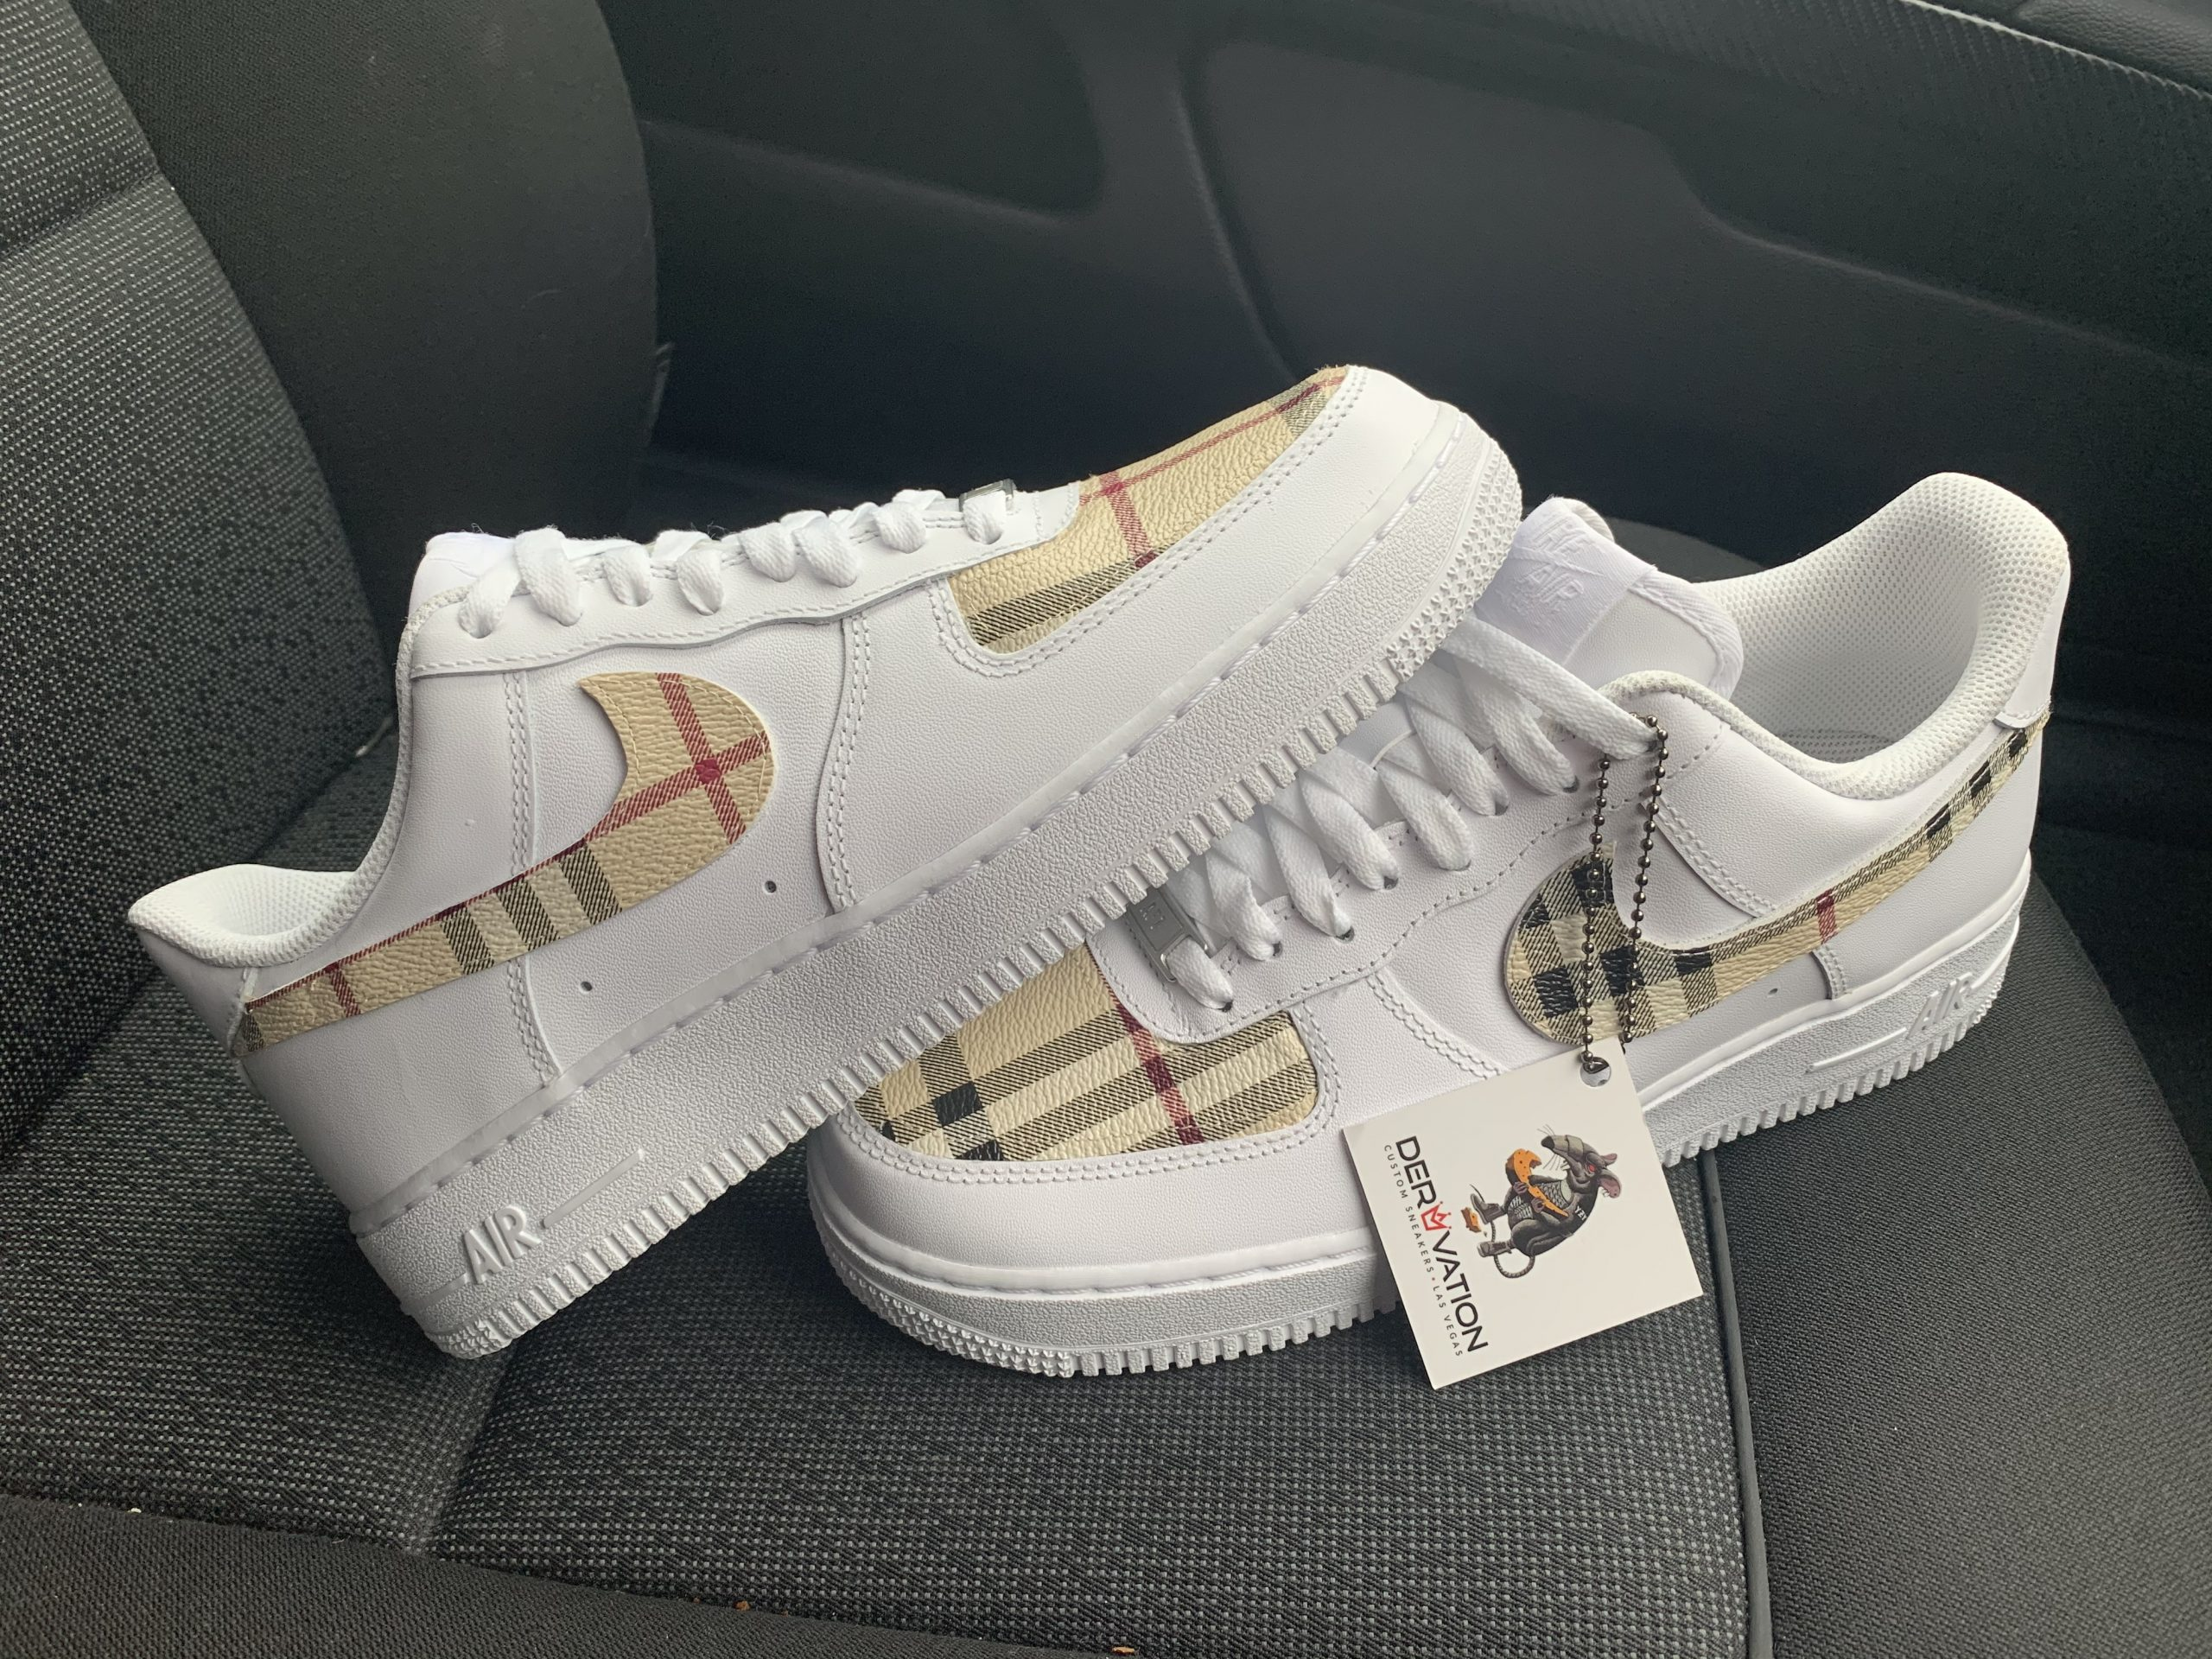 Custom Burberry 19 Air Force 1 Derivation Customs Custom